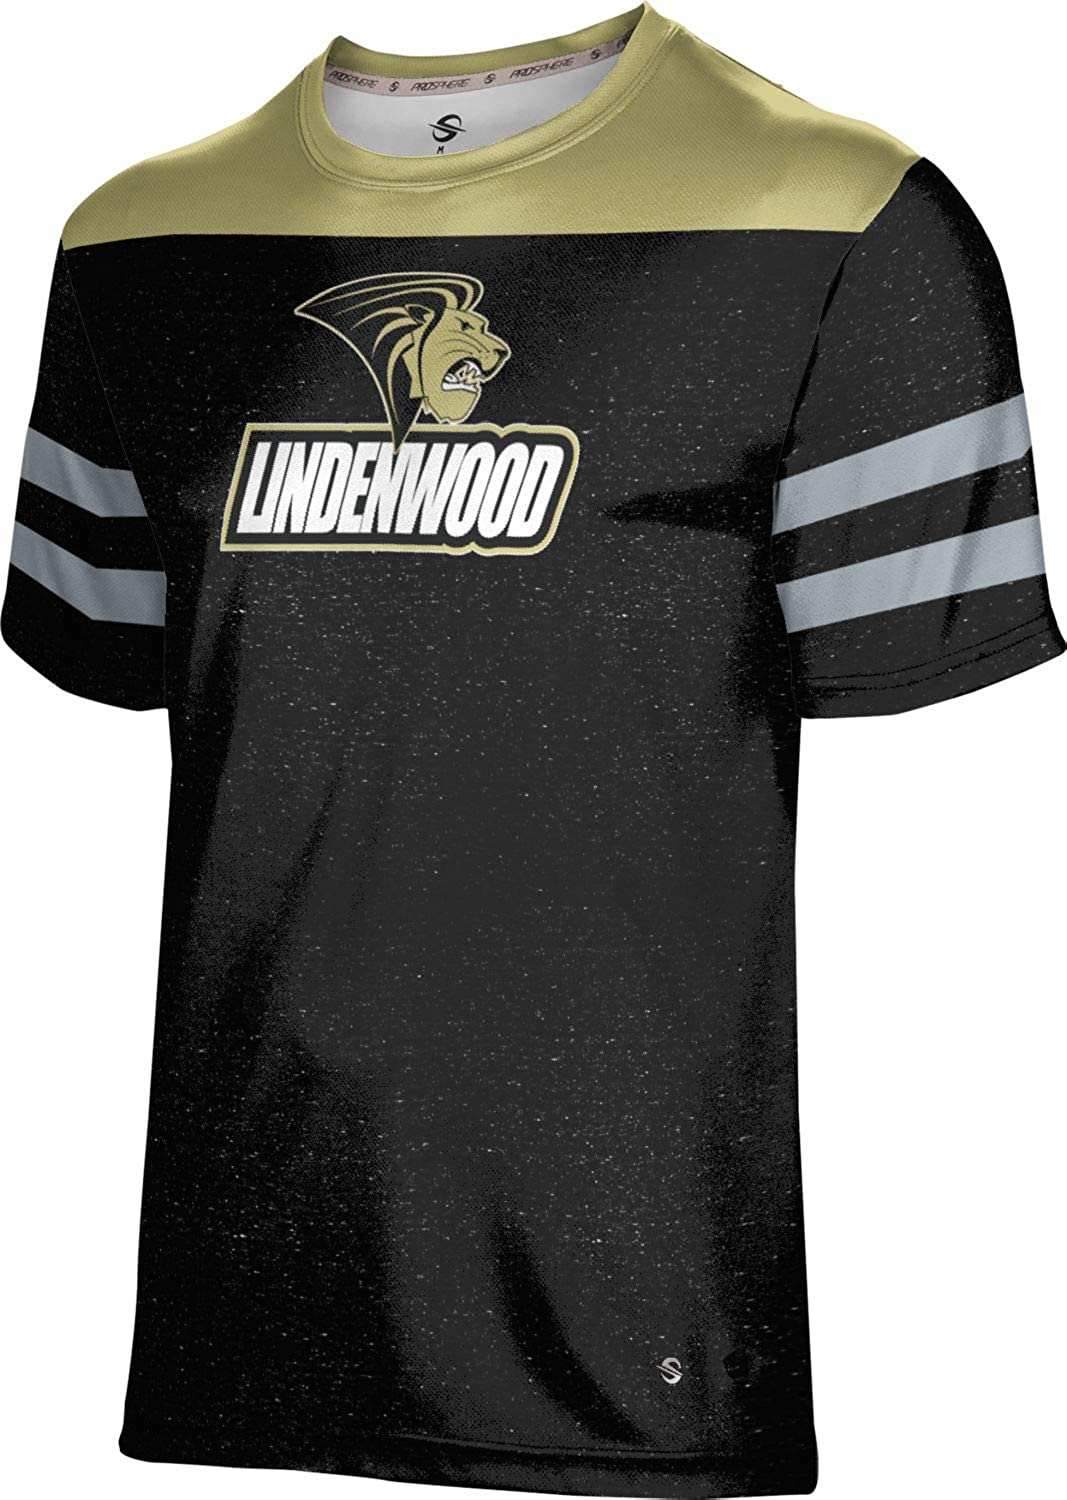 Max 40% OFF ProSphere Lindenwood University Deluxe Boys' Performance T-Shirt Gamed